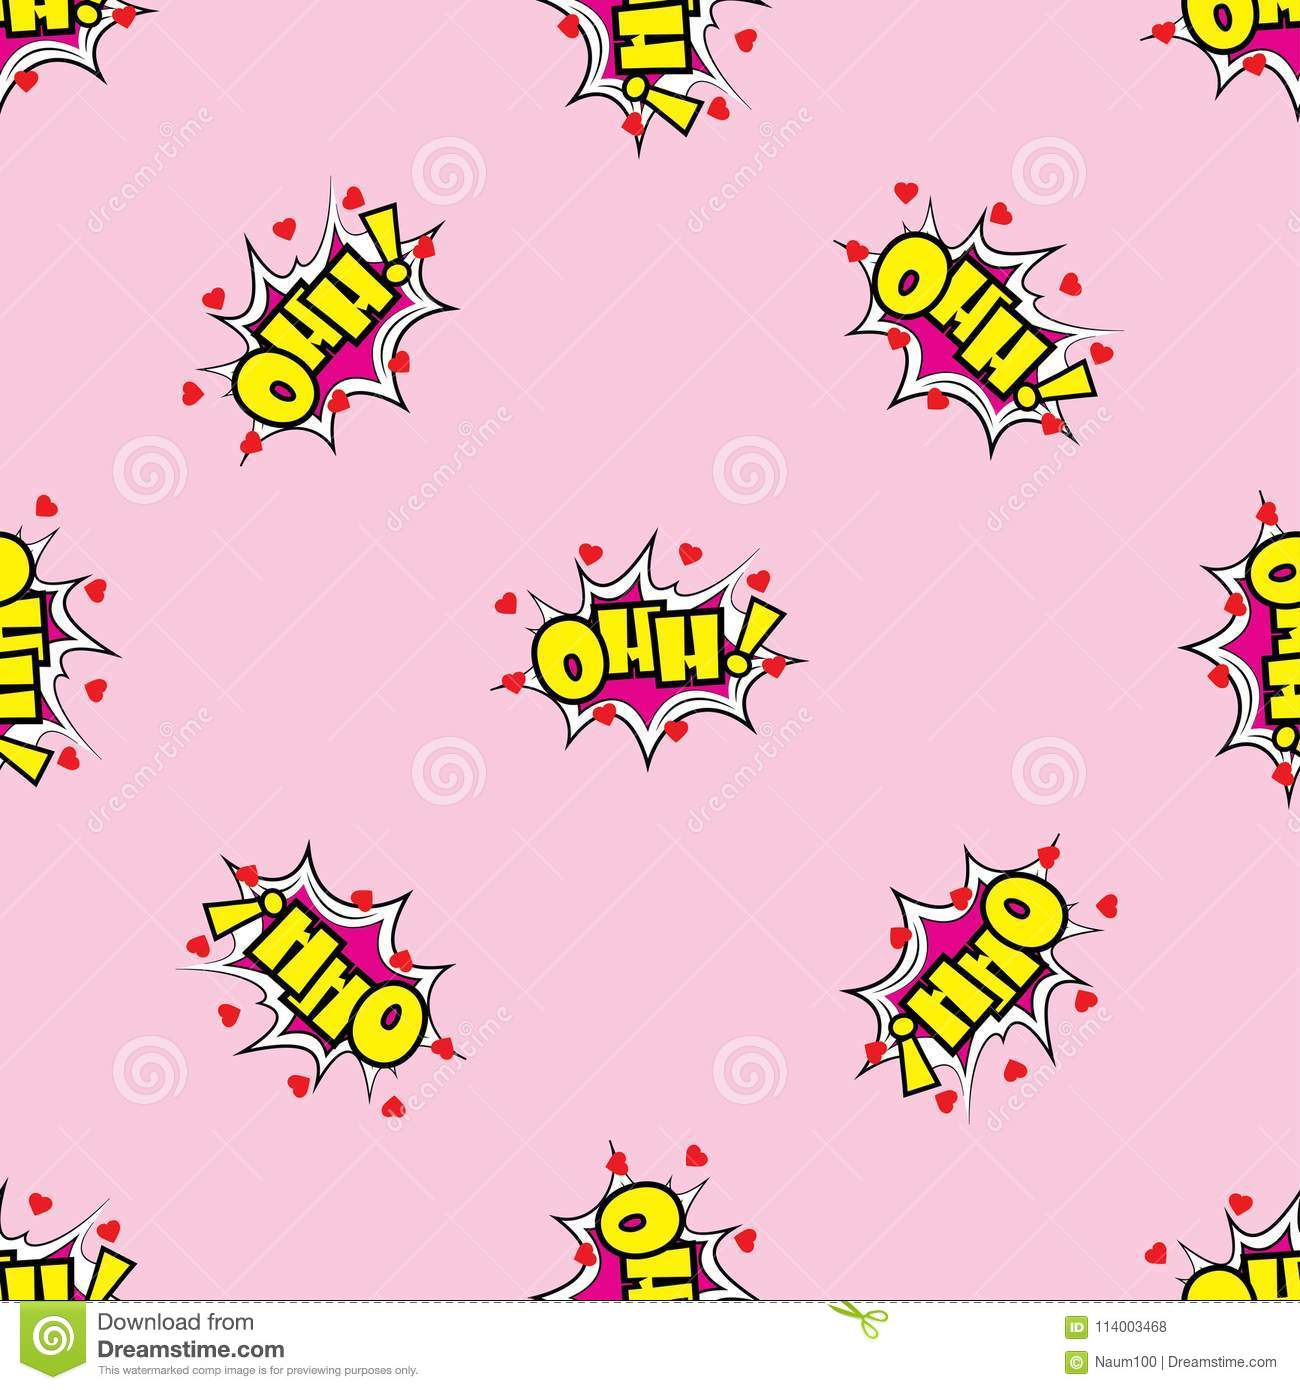 ohh comic sound effects in pop art style seamless pattern stock